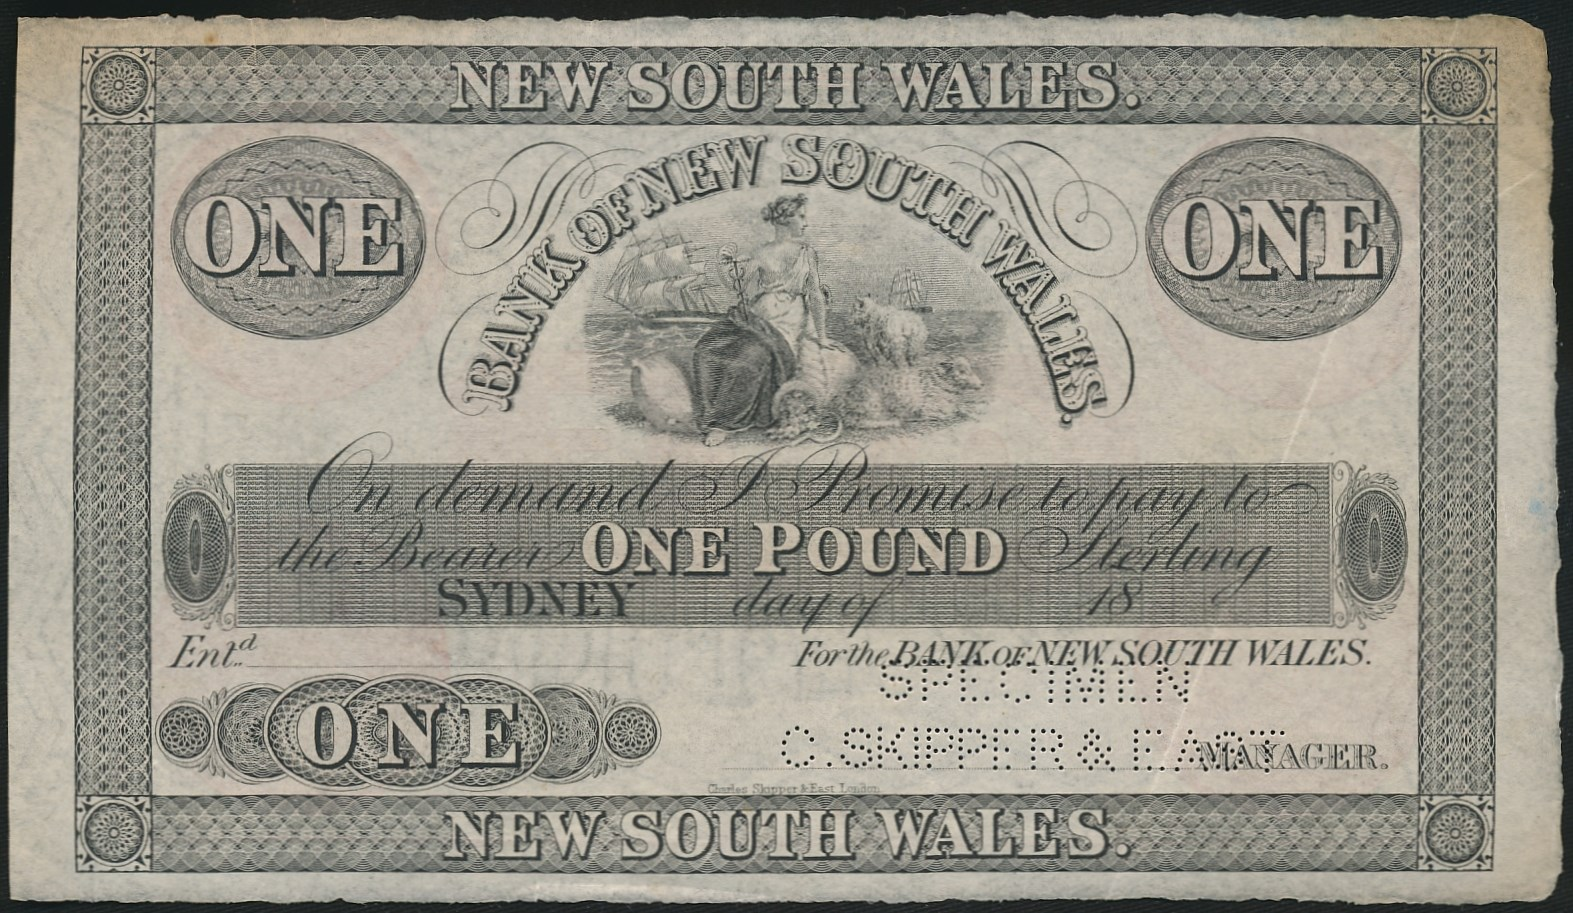 Australia-c1880s-Bank-of-New-South-Wales-Sydney-1-Specimen-Cat-18-000-RARE